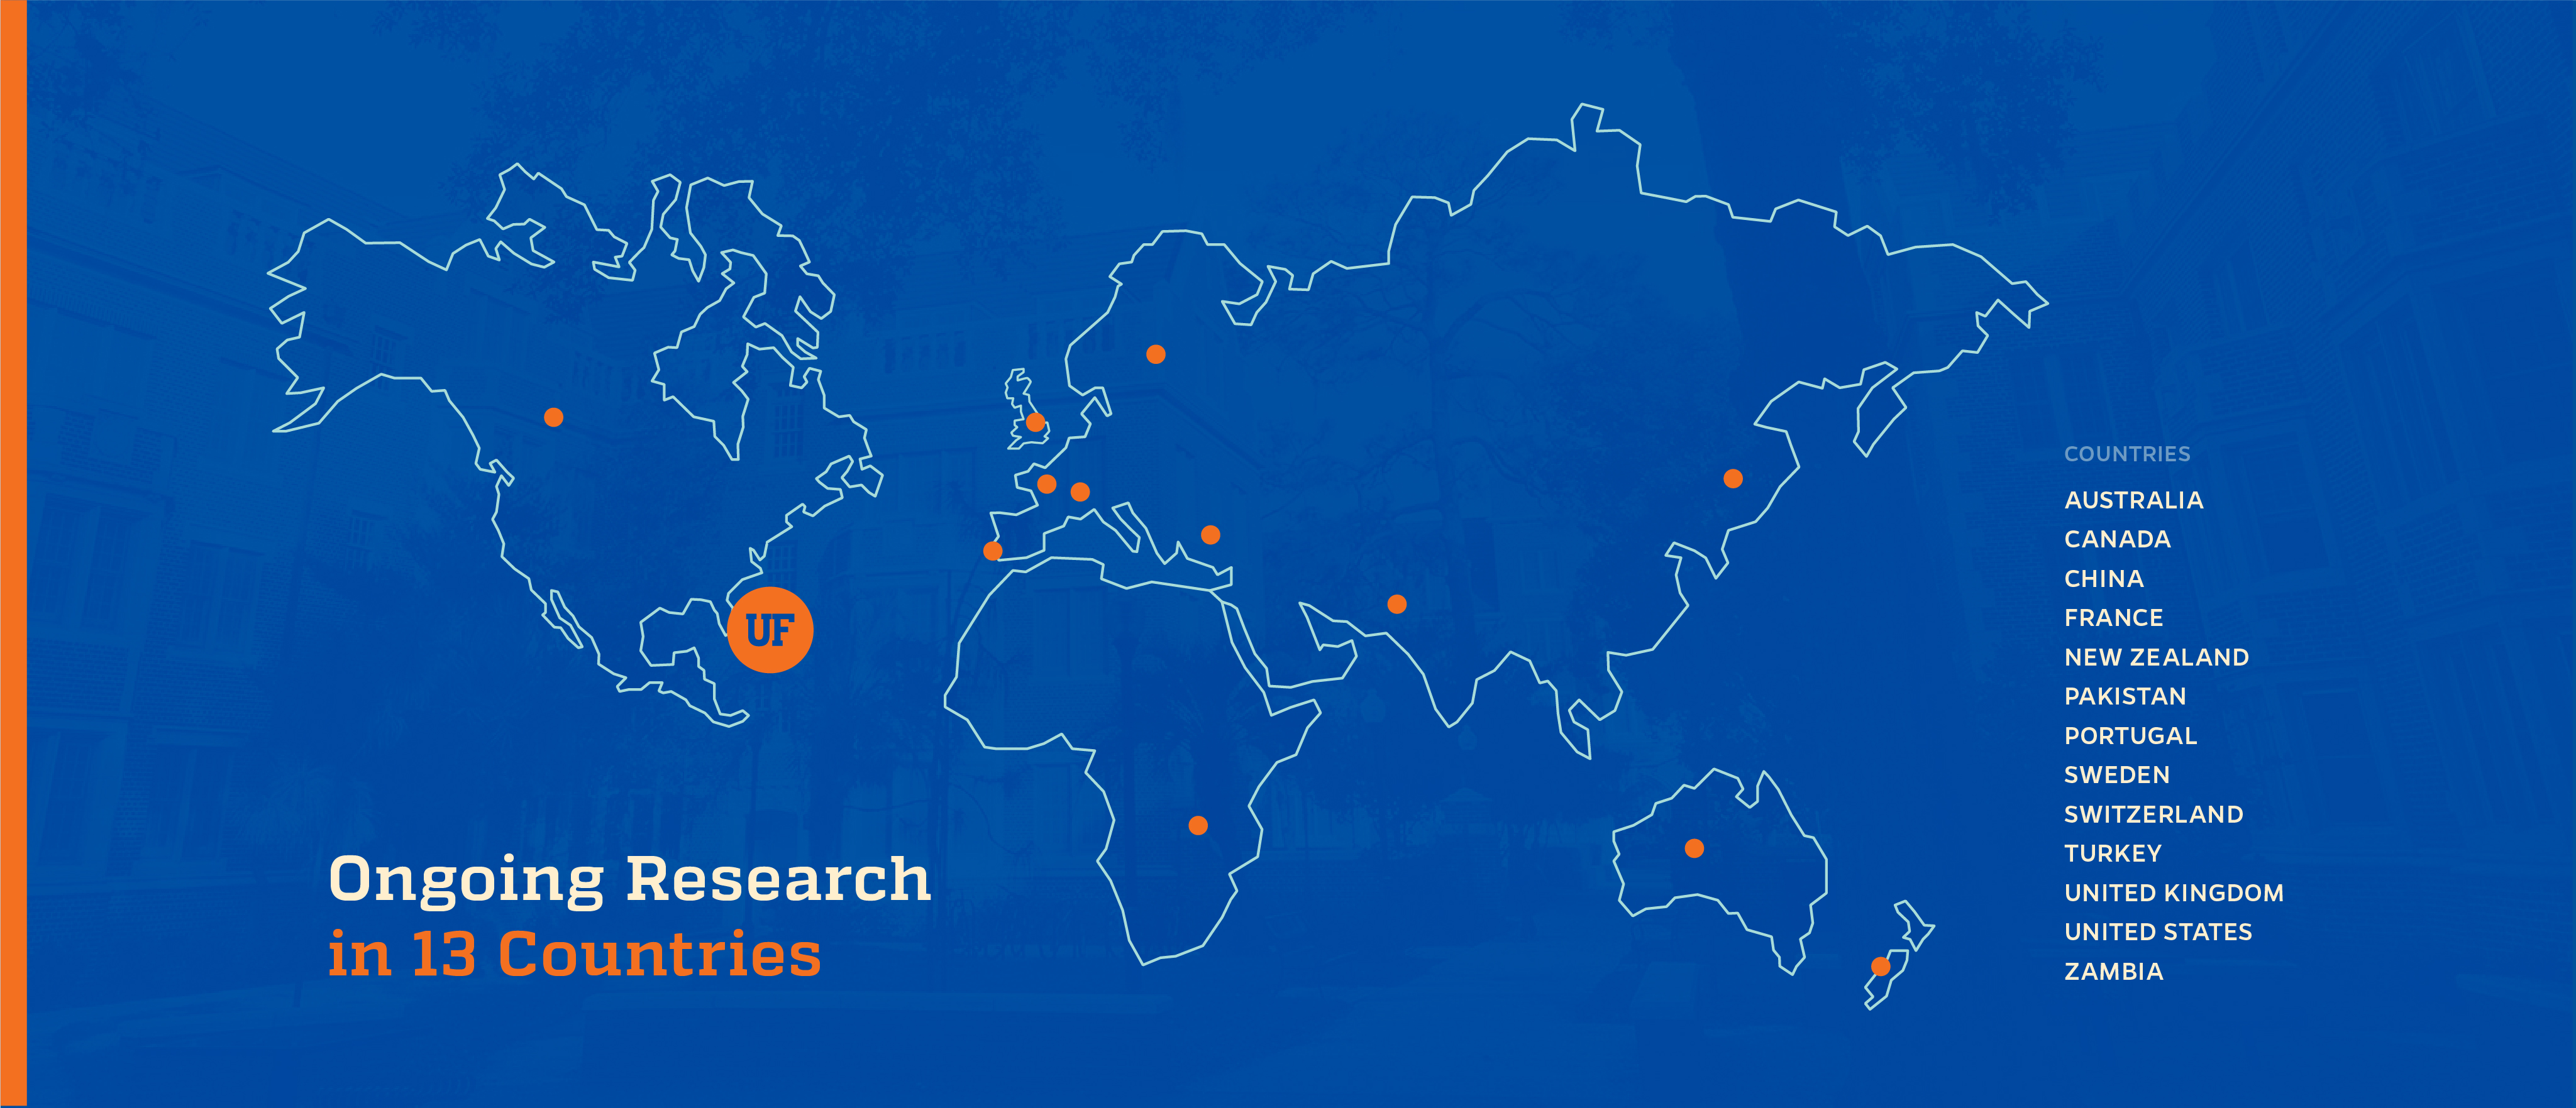 Infographic displaying that The Anita Zucker center has ongoing research in 13 countries